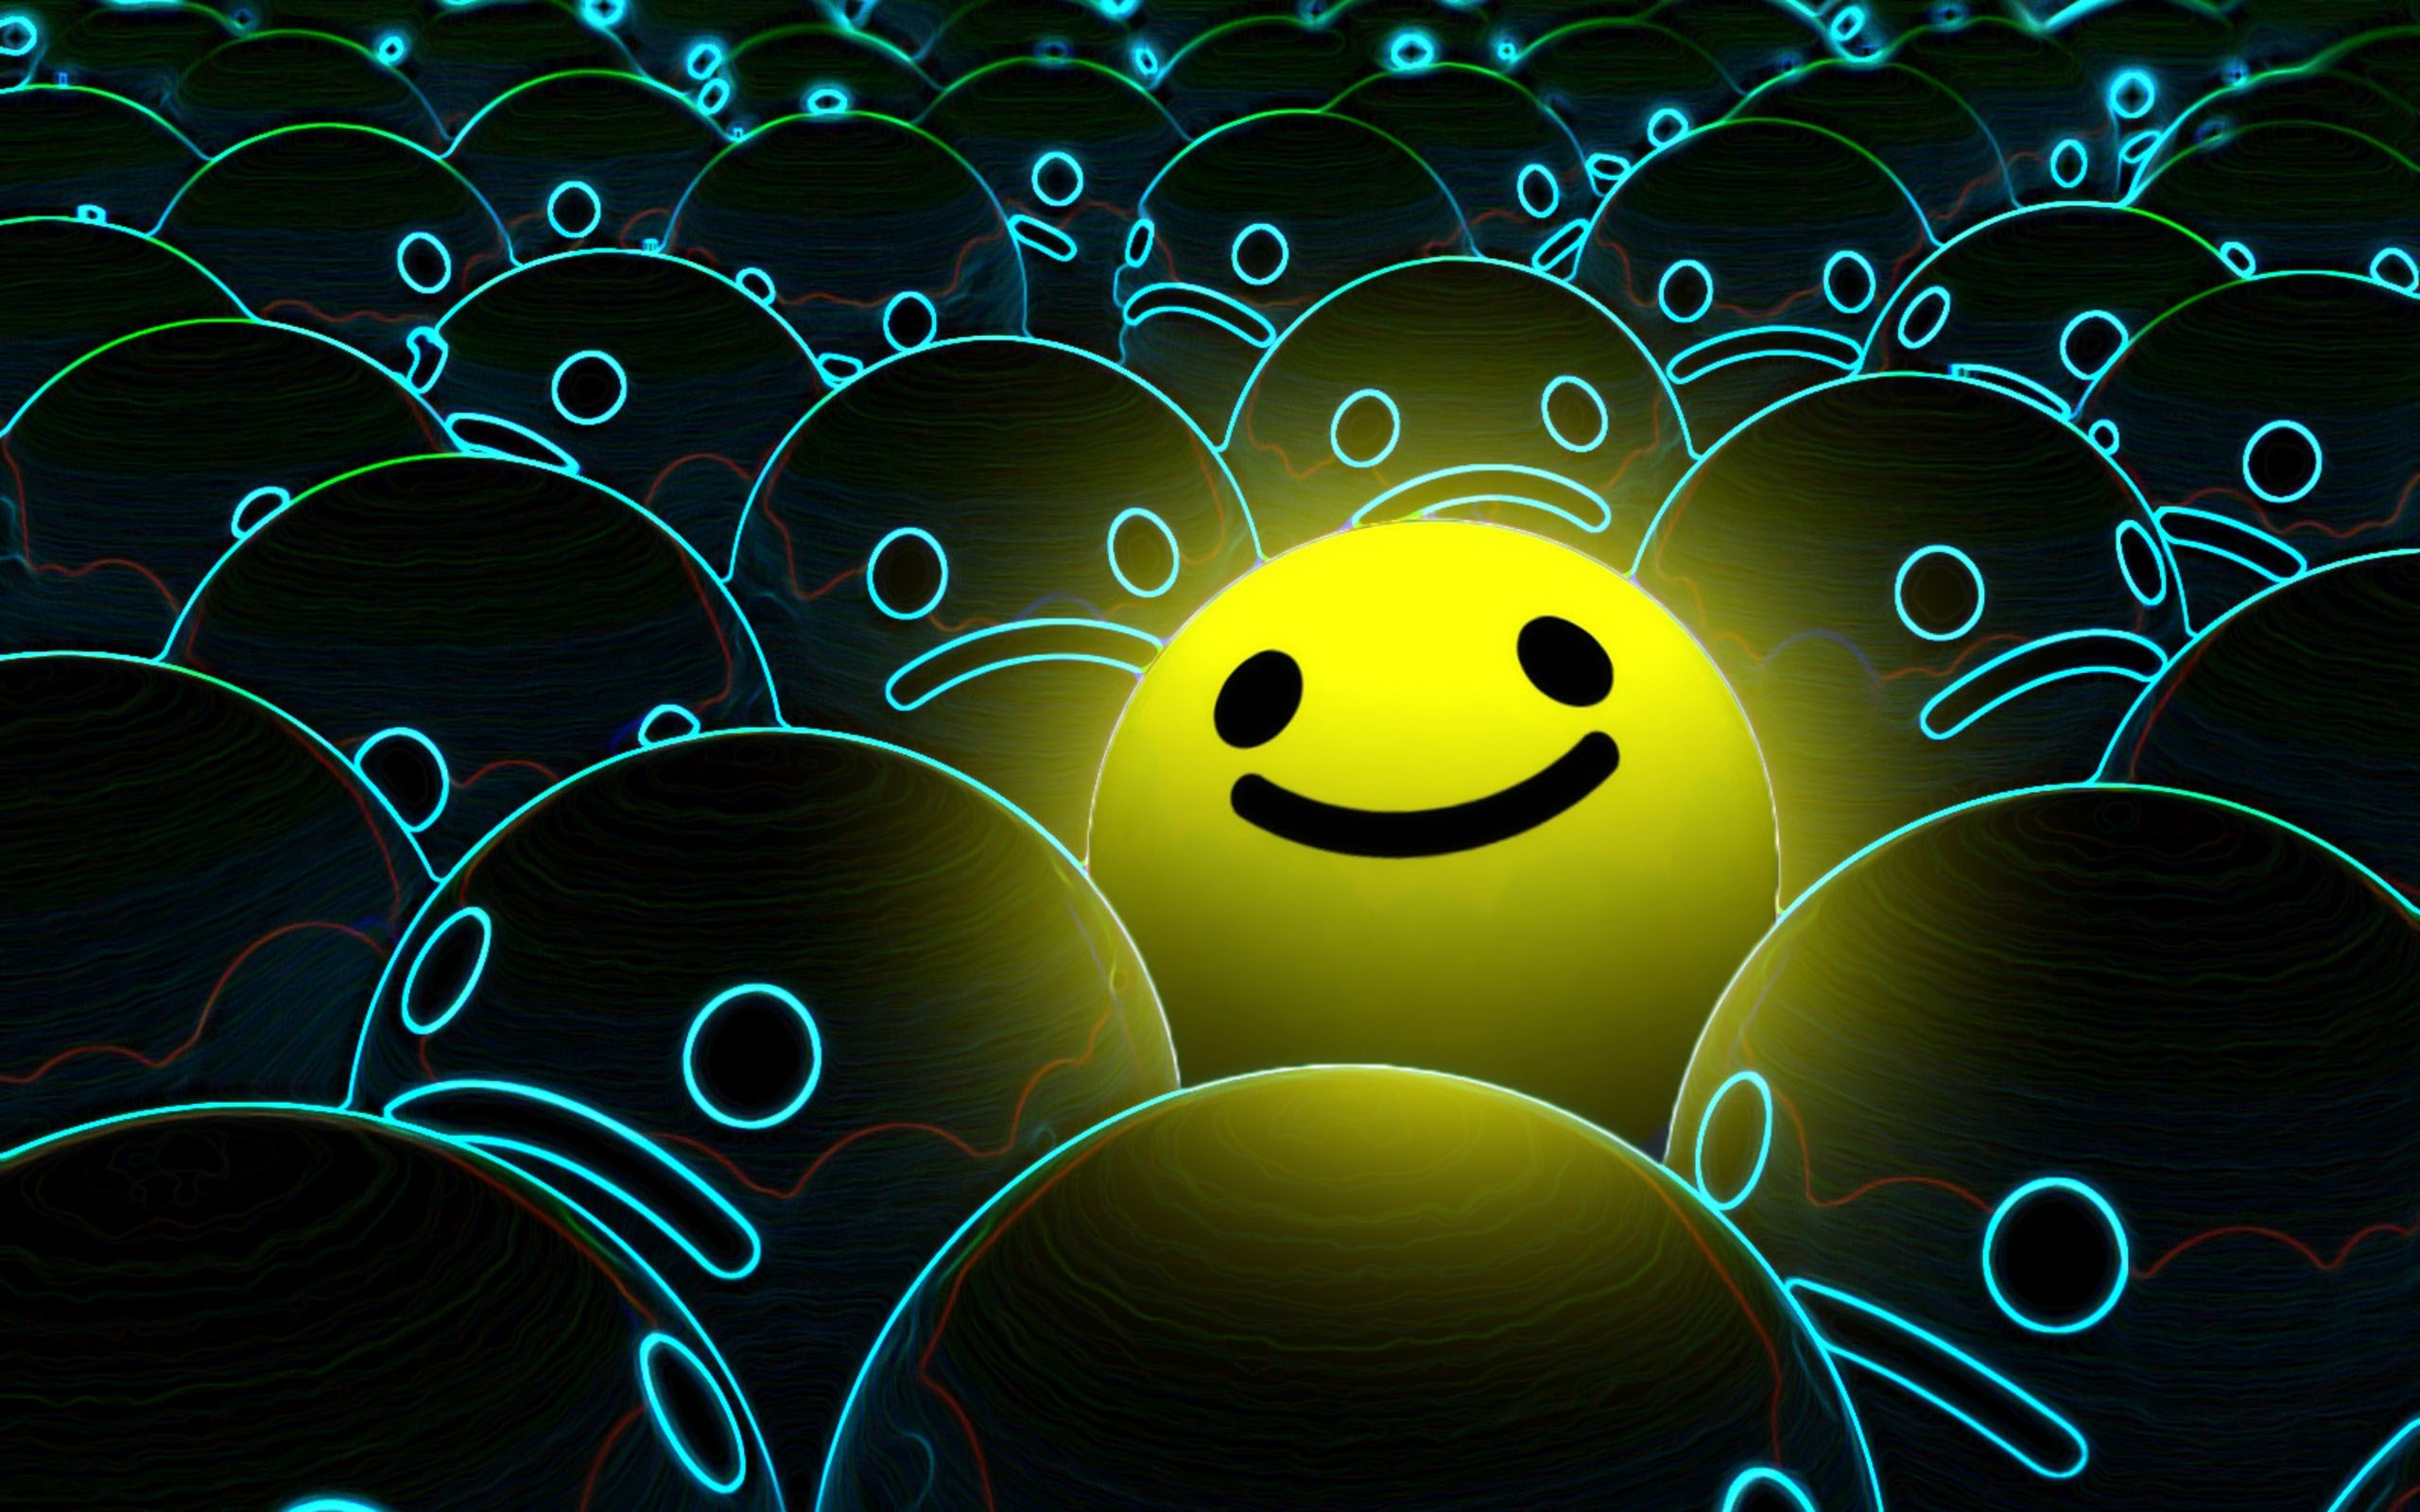 Wallpapers For > Animated Smiley Face Backgrounds | Wallpaper in Animated Smiley Face Backgrounds 30604